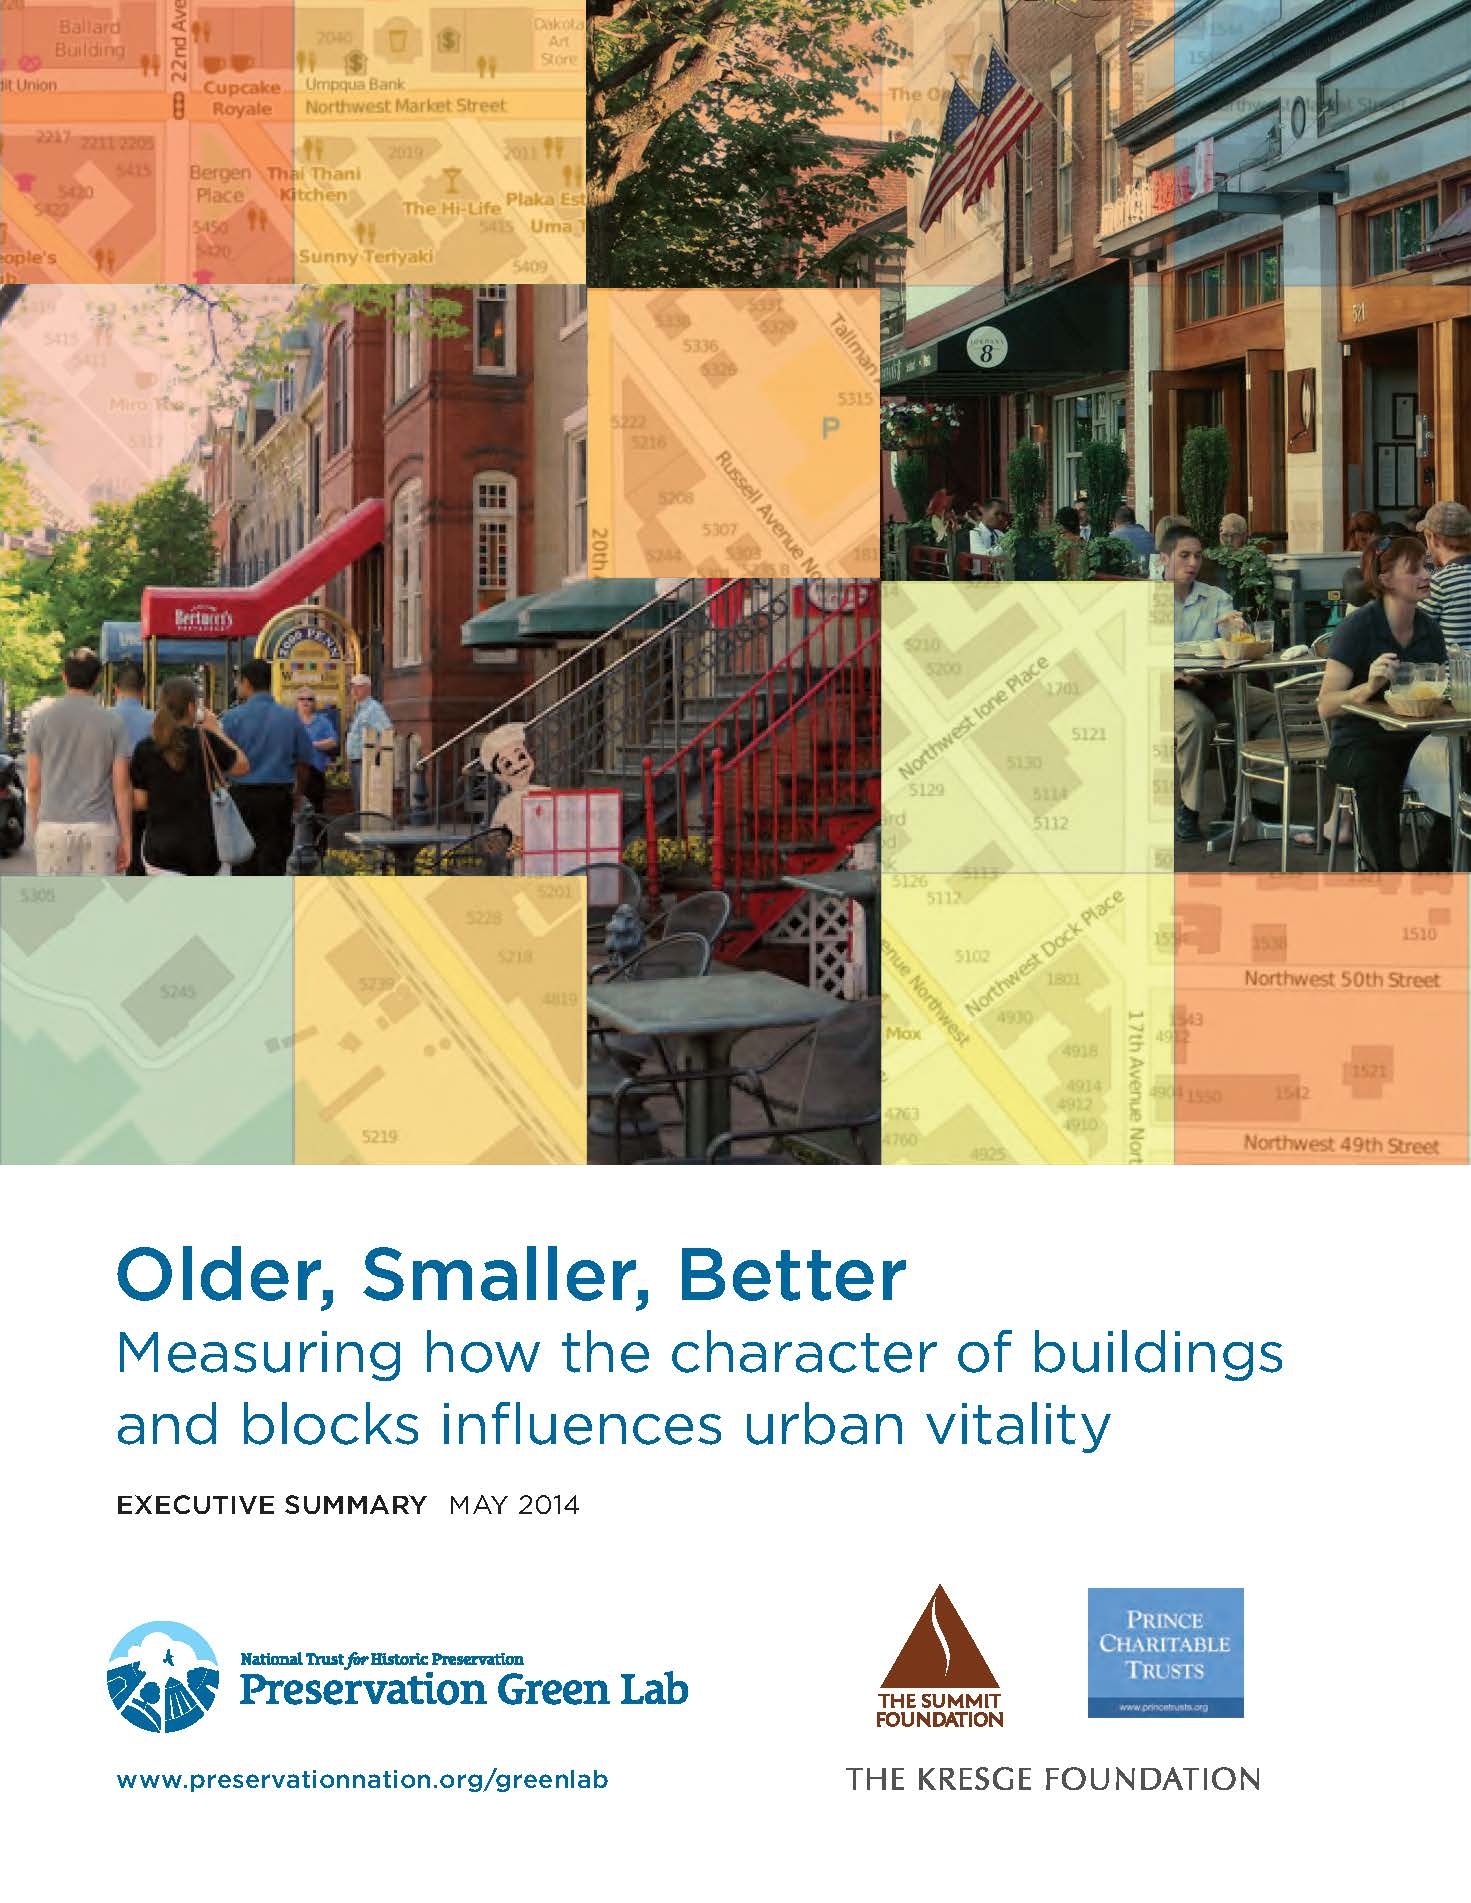 Older Smaller Better, Measuring Character, Summary Front Page